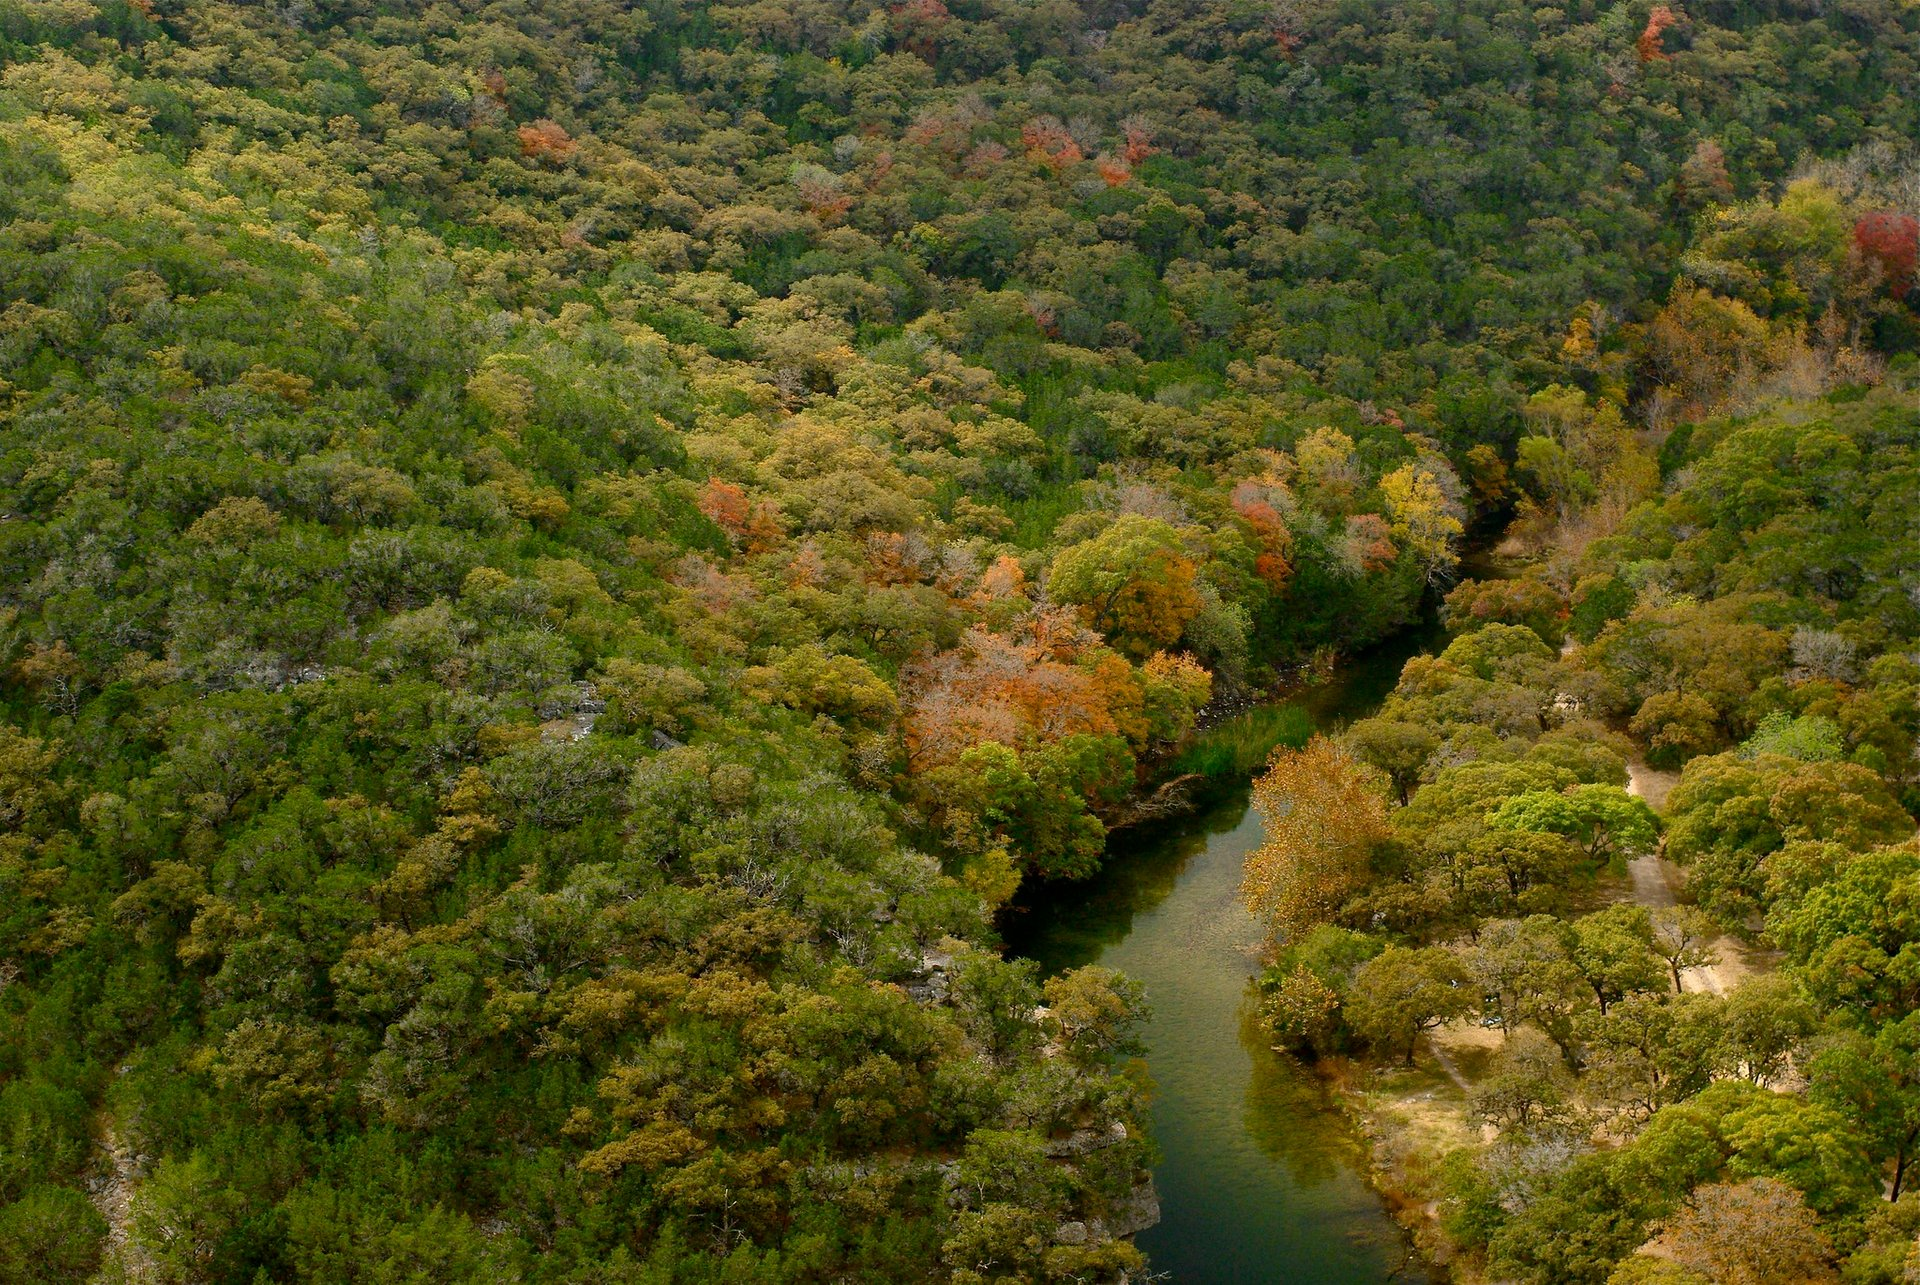 Lost Maples State Natural Area in the Texas Hill Country 2020